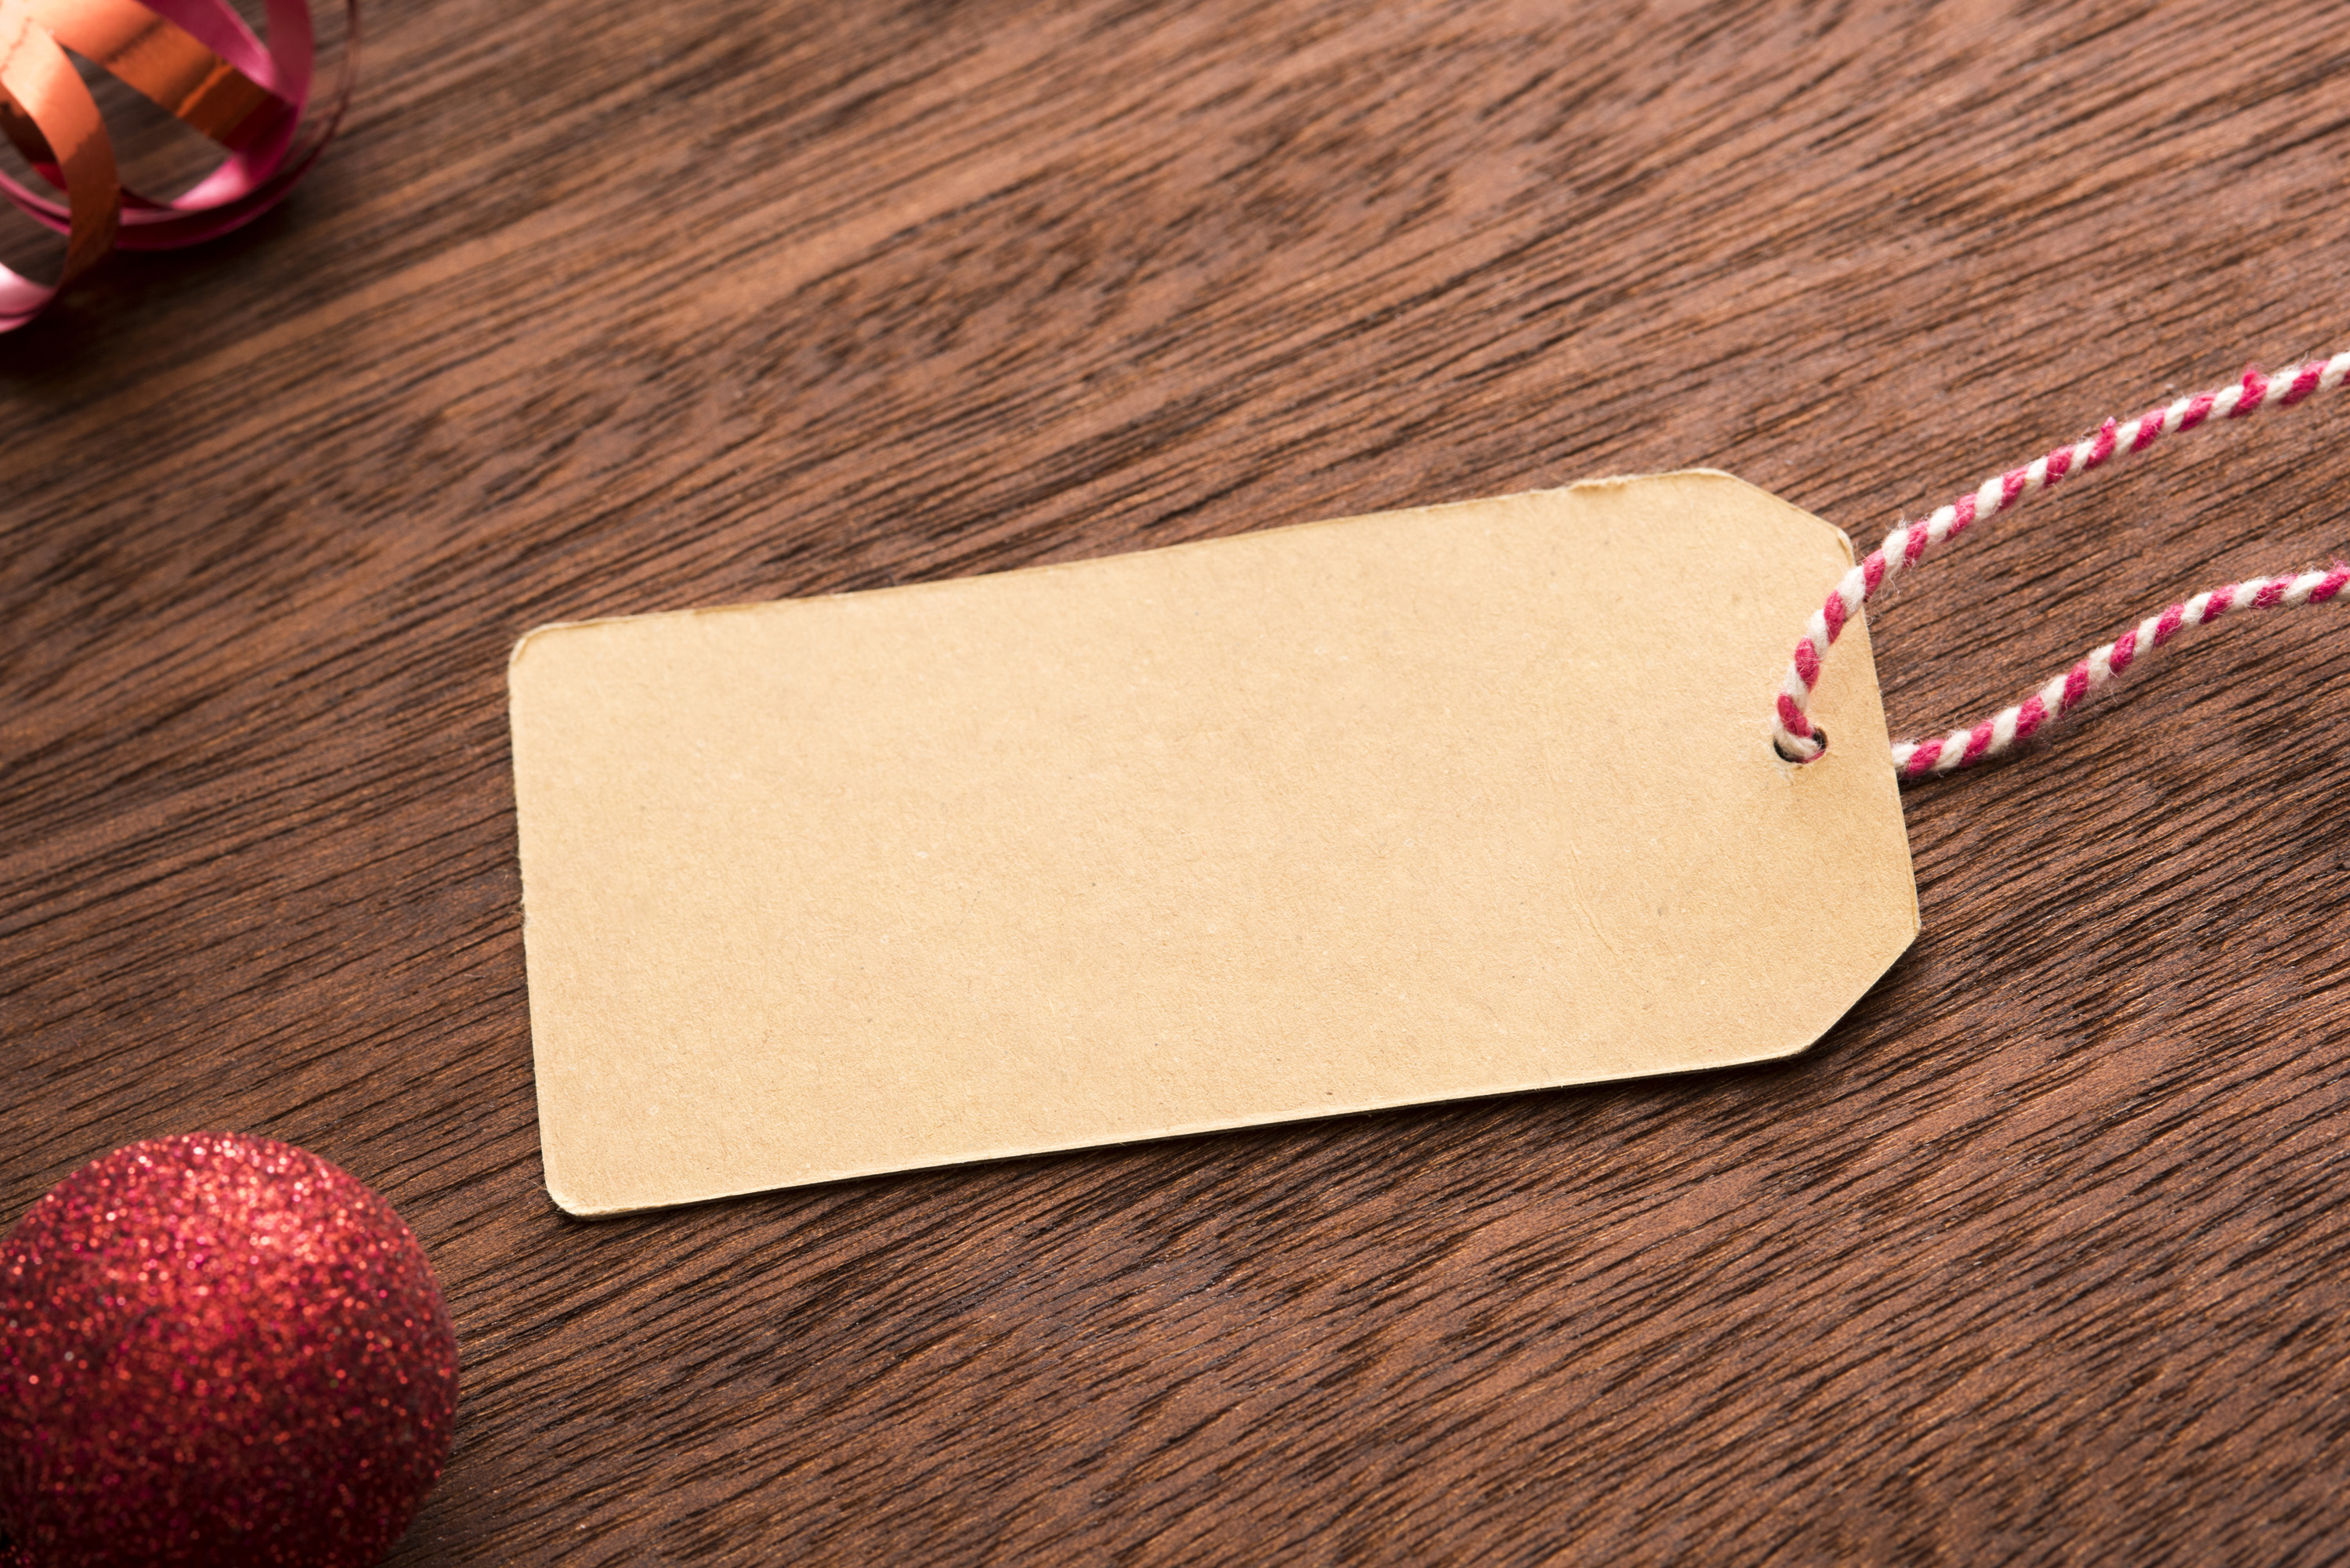 photo of blank gift tag with xmas decorations